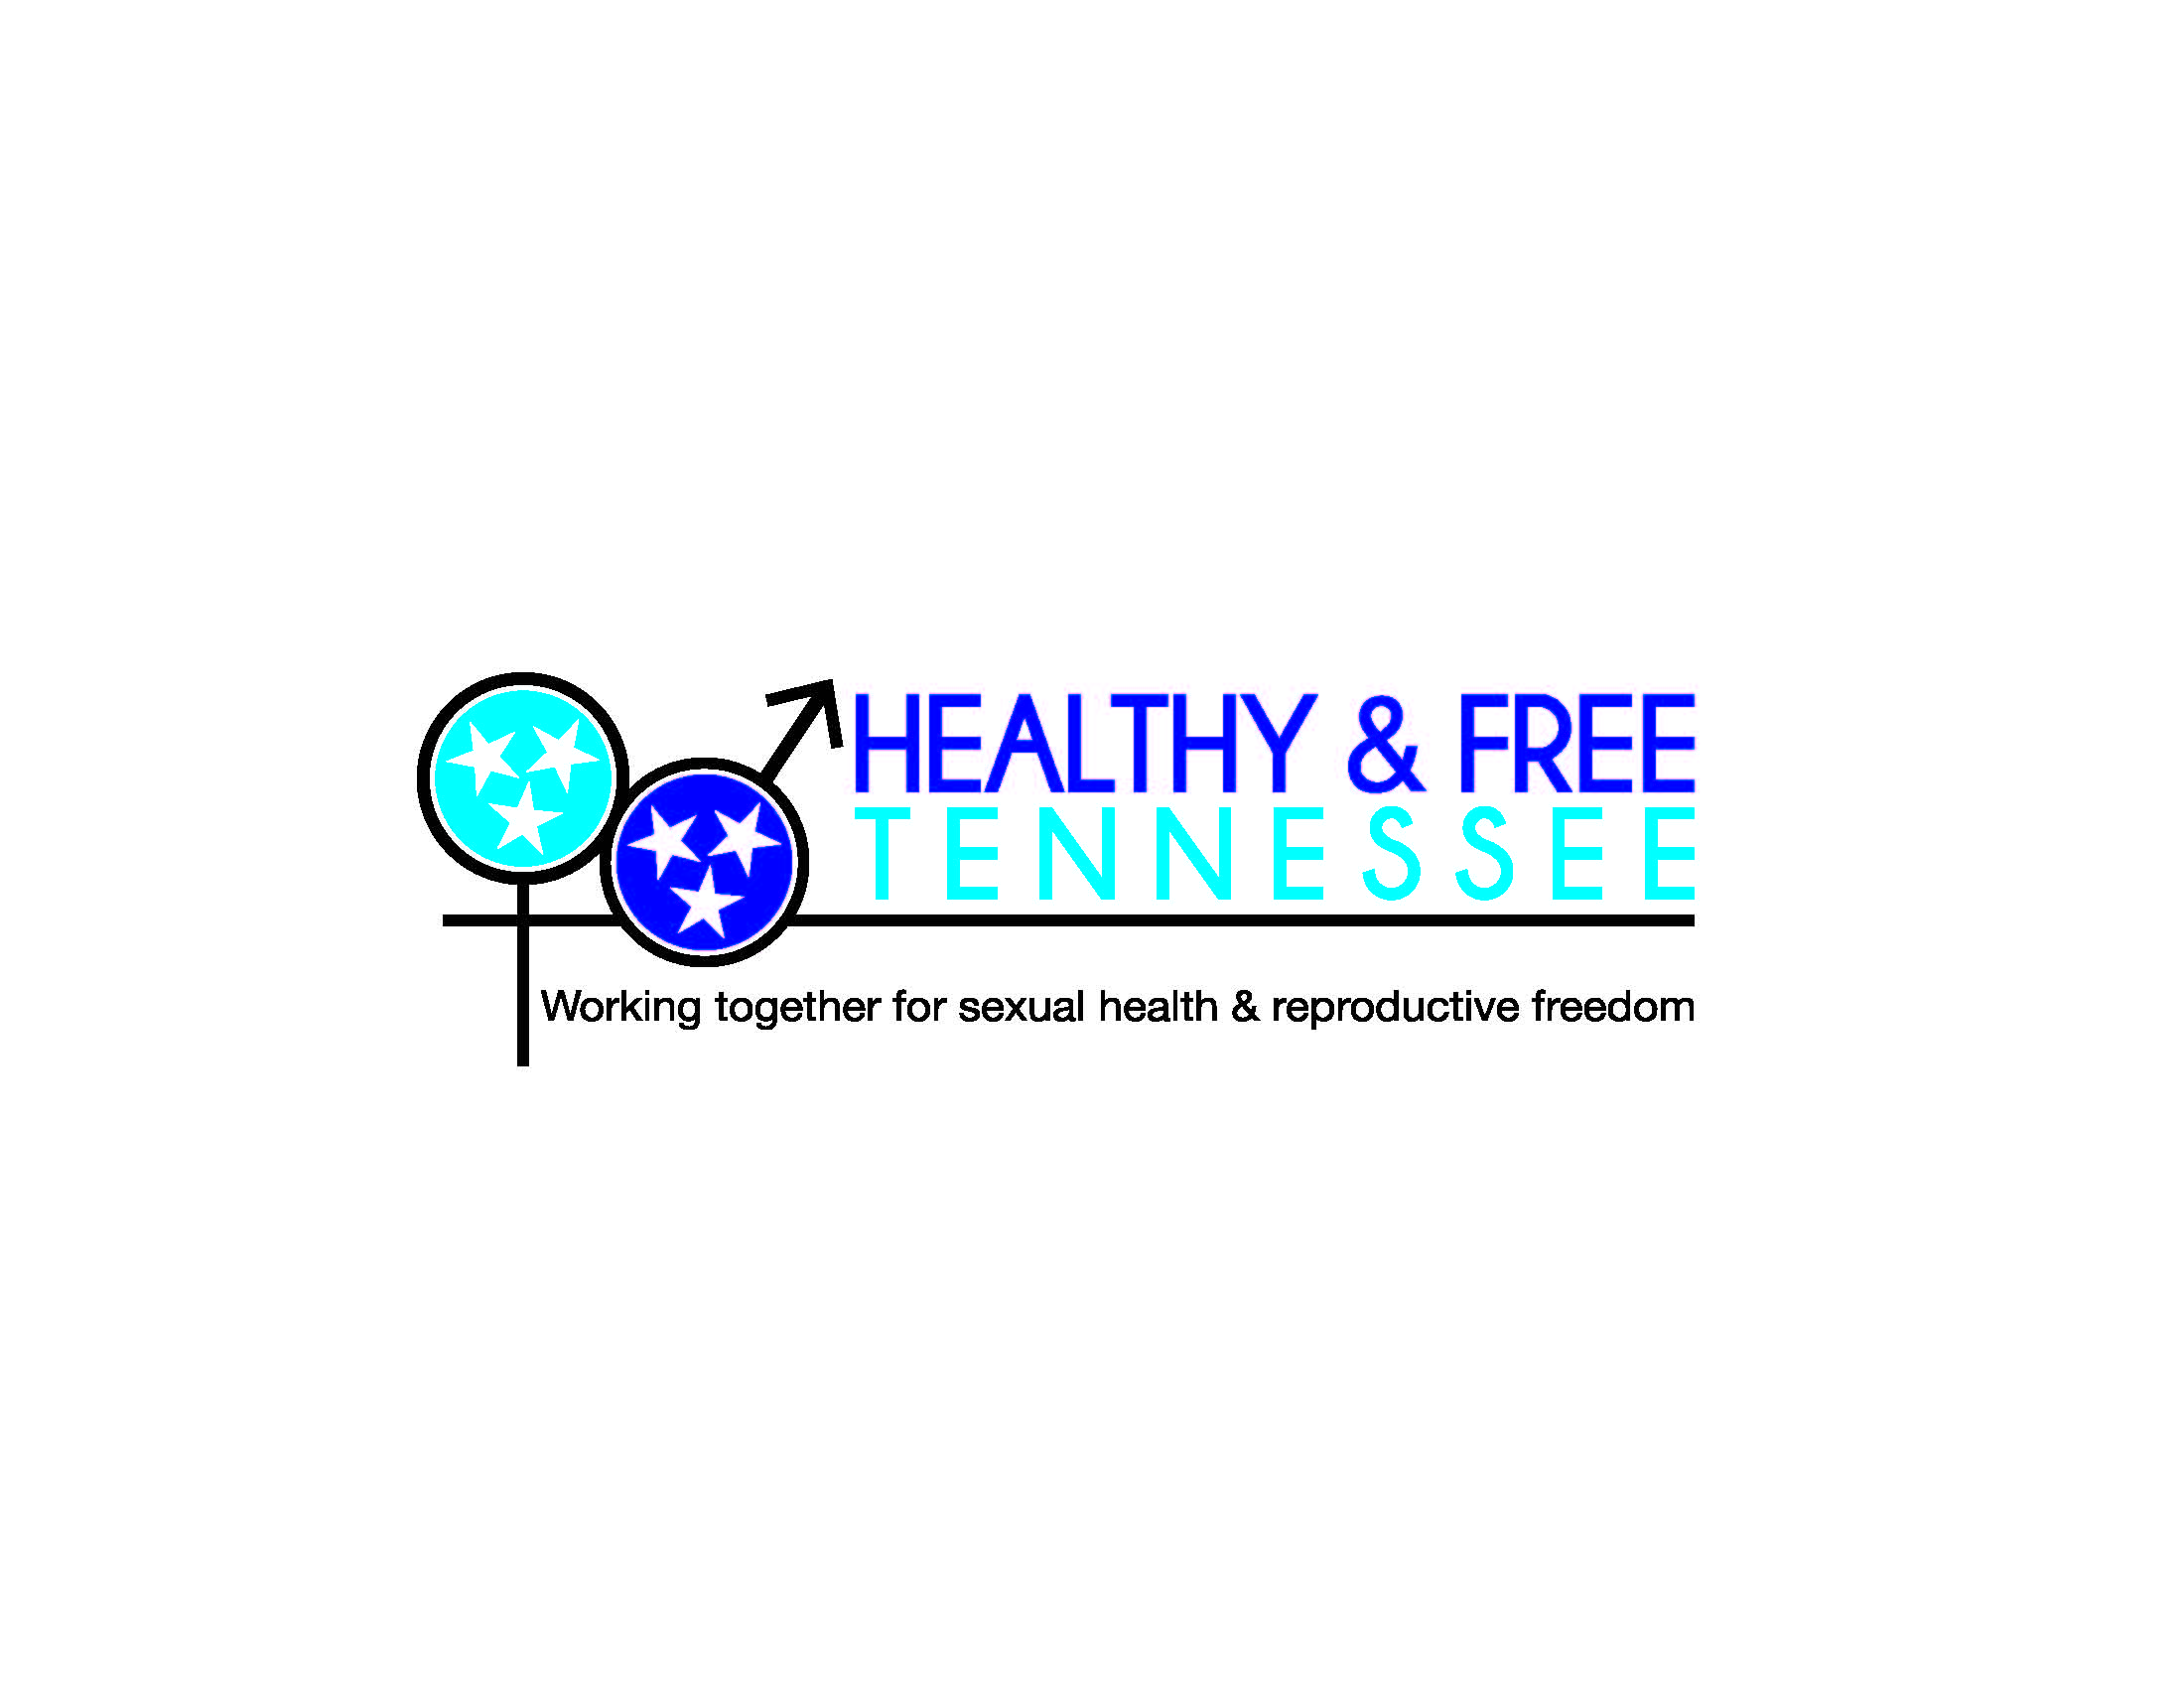 Healthy & Free Tennessee